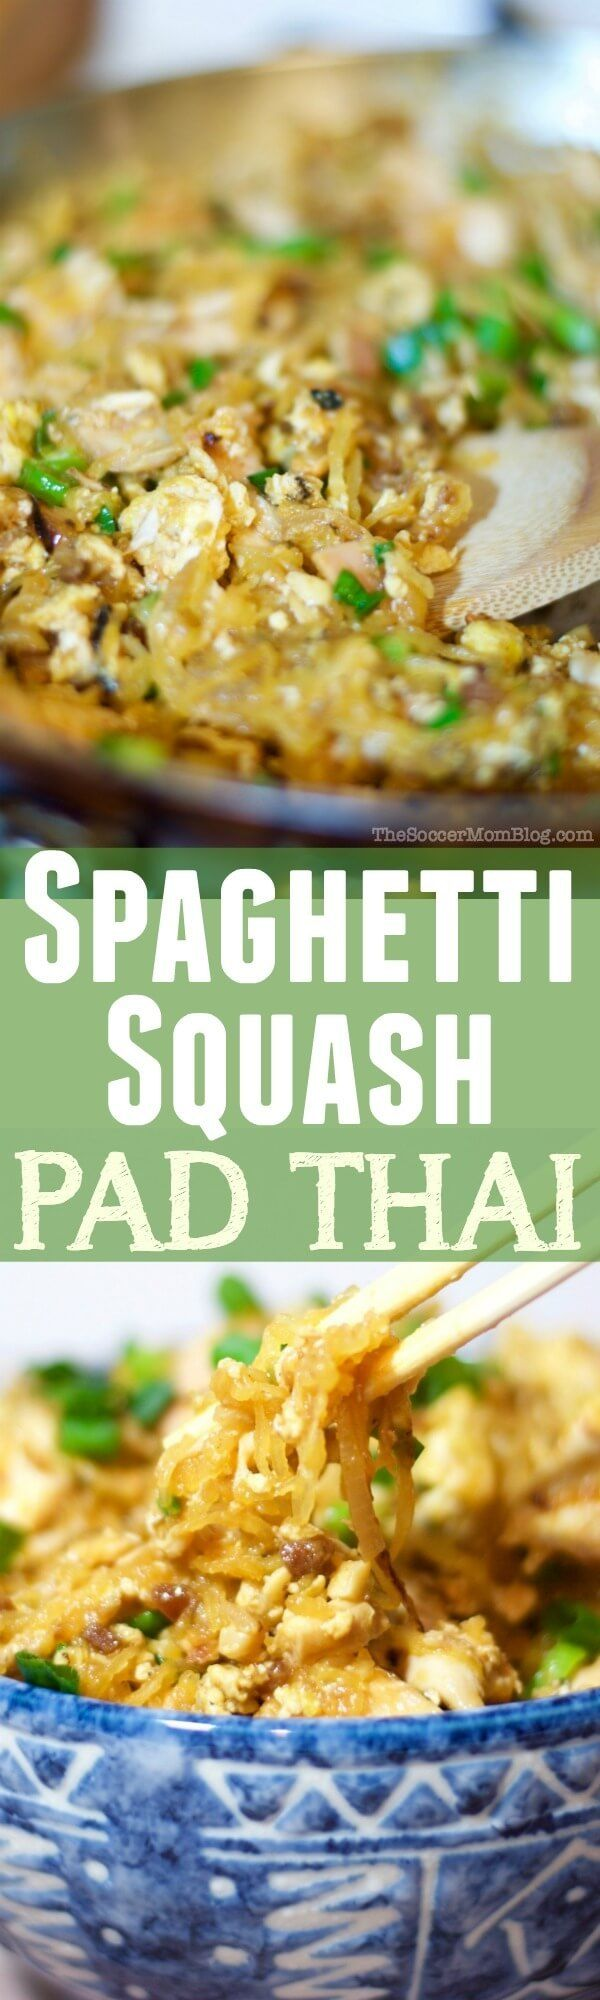 A guilt-free Spaghetti Squash Pad Thai recipe that tastes so amazing, you'd almost swear it's the real thing! (Asian Chicken Pasta)